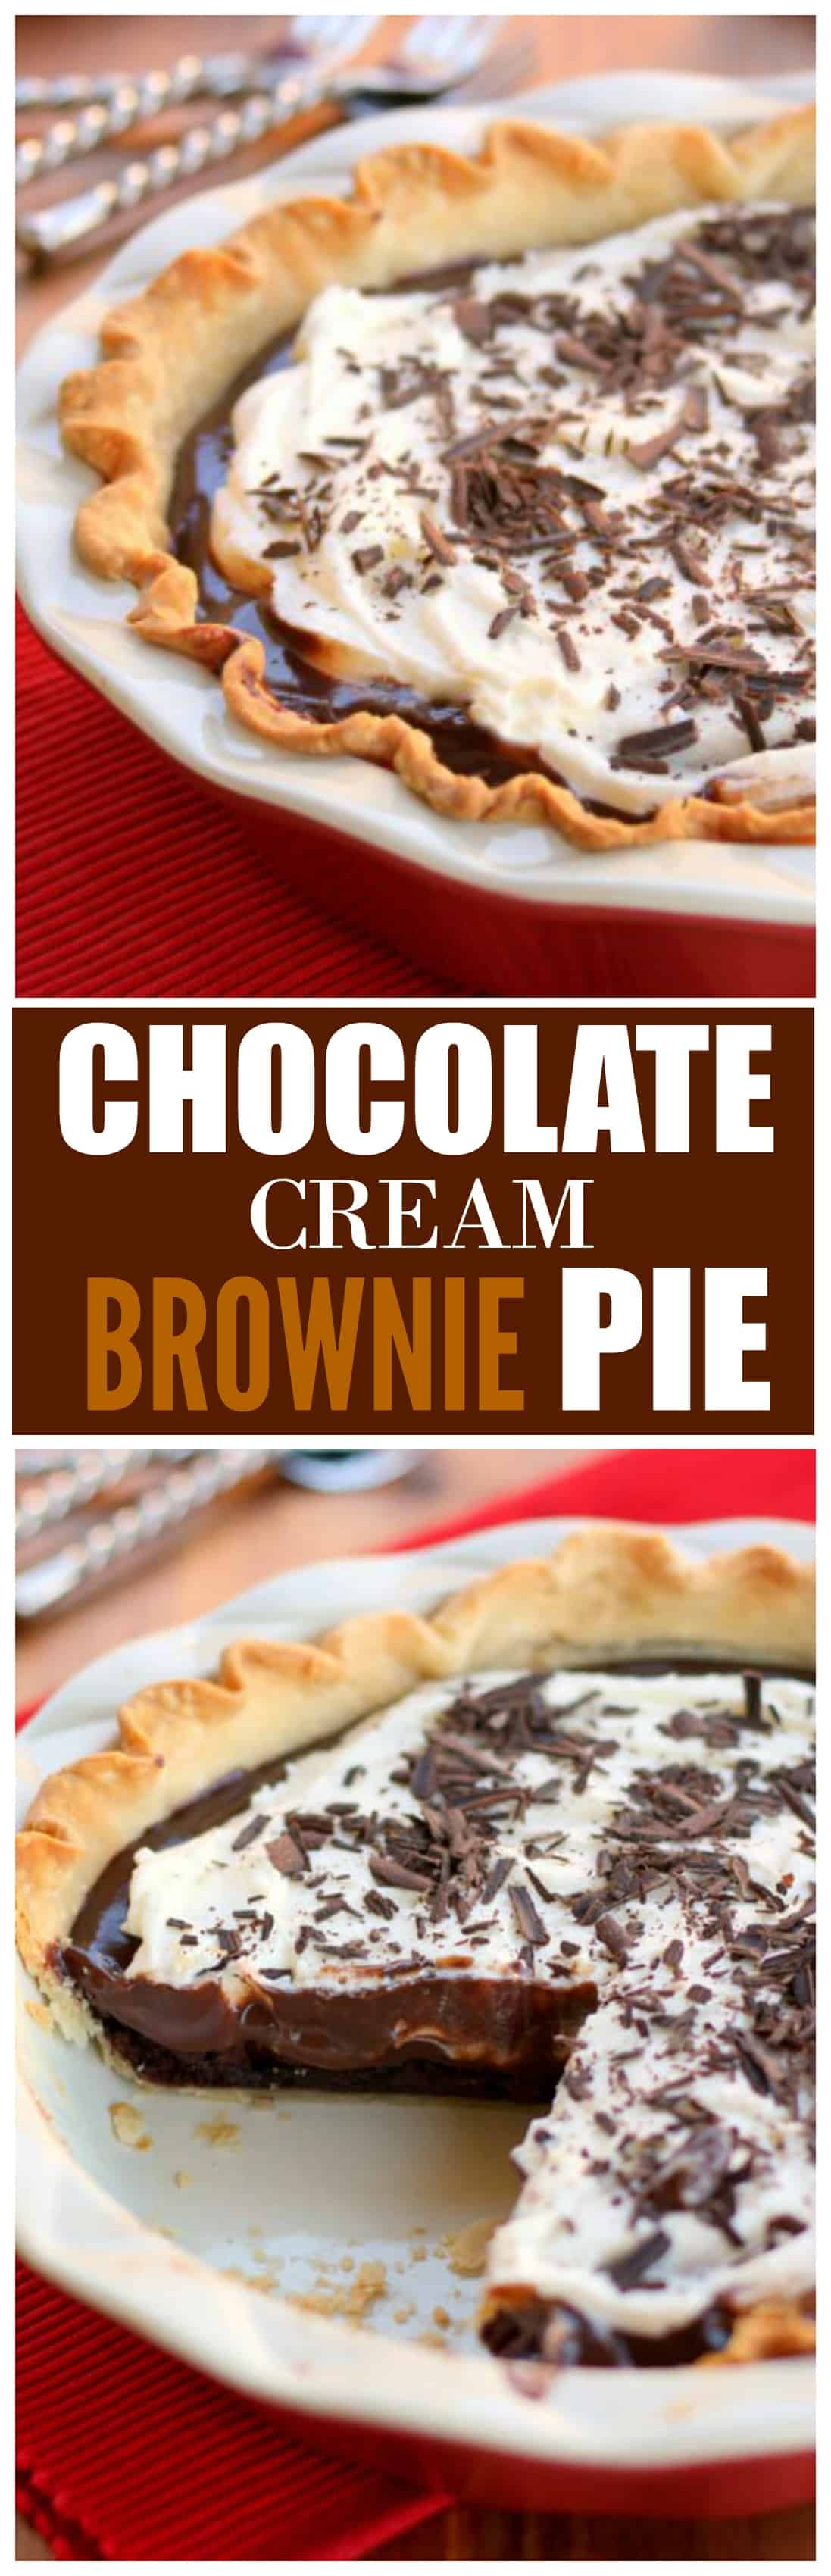 This Chocolate Cream Brownie Pie has a fudgy brownie base topped with a chocolate cream filling and fresh whipped cream. #chocolate #cream #pie #dessert #thanksgiving